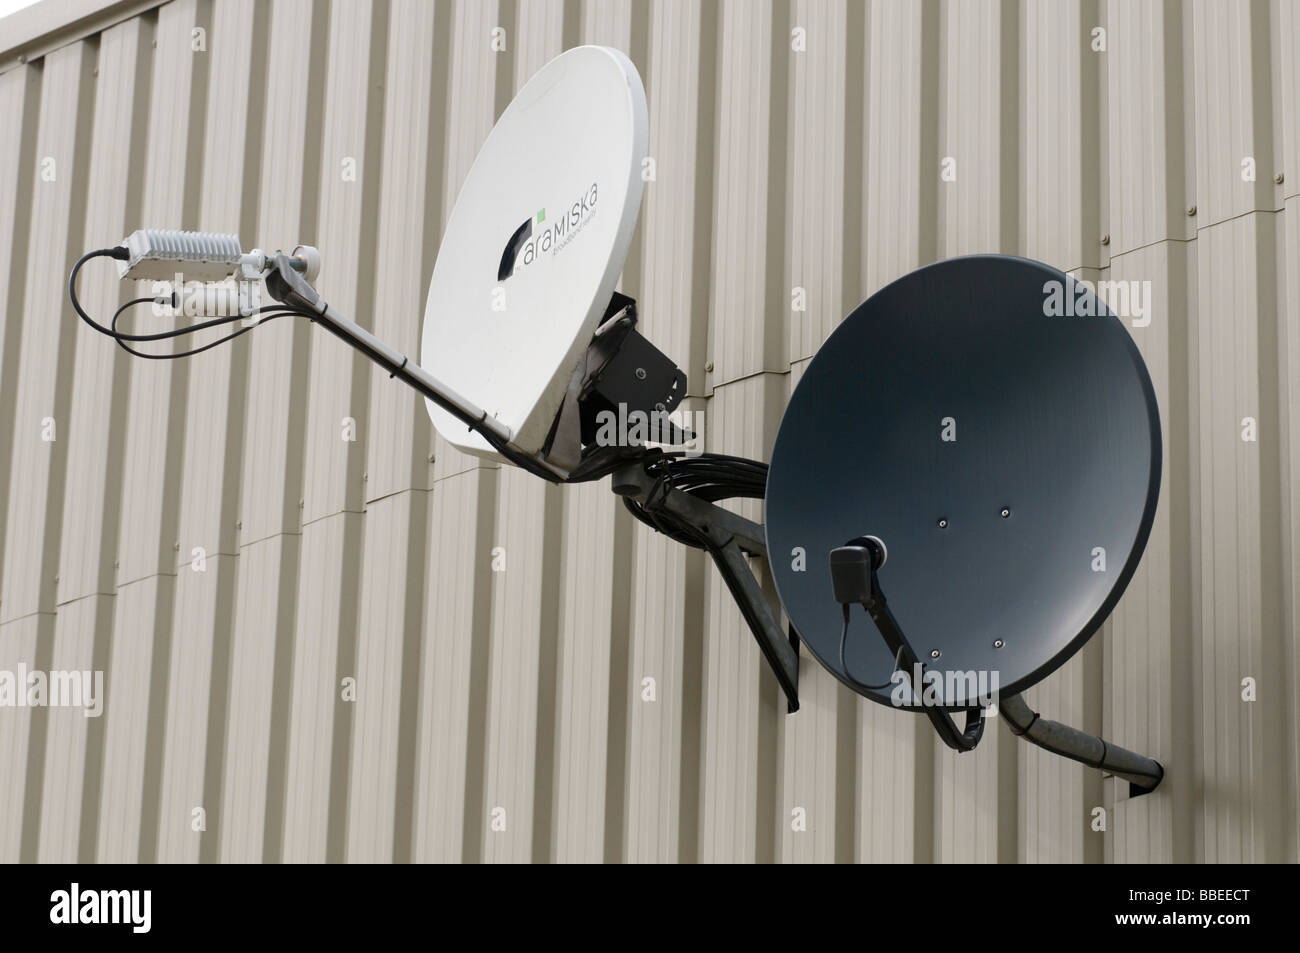 satellite dish receiver receiving lmb sky reception tv television stock photo royalty free. Black Bedroom Furniture Sets. Home Design Ideas